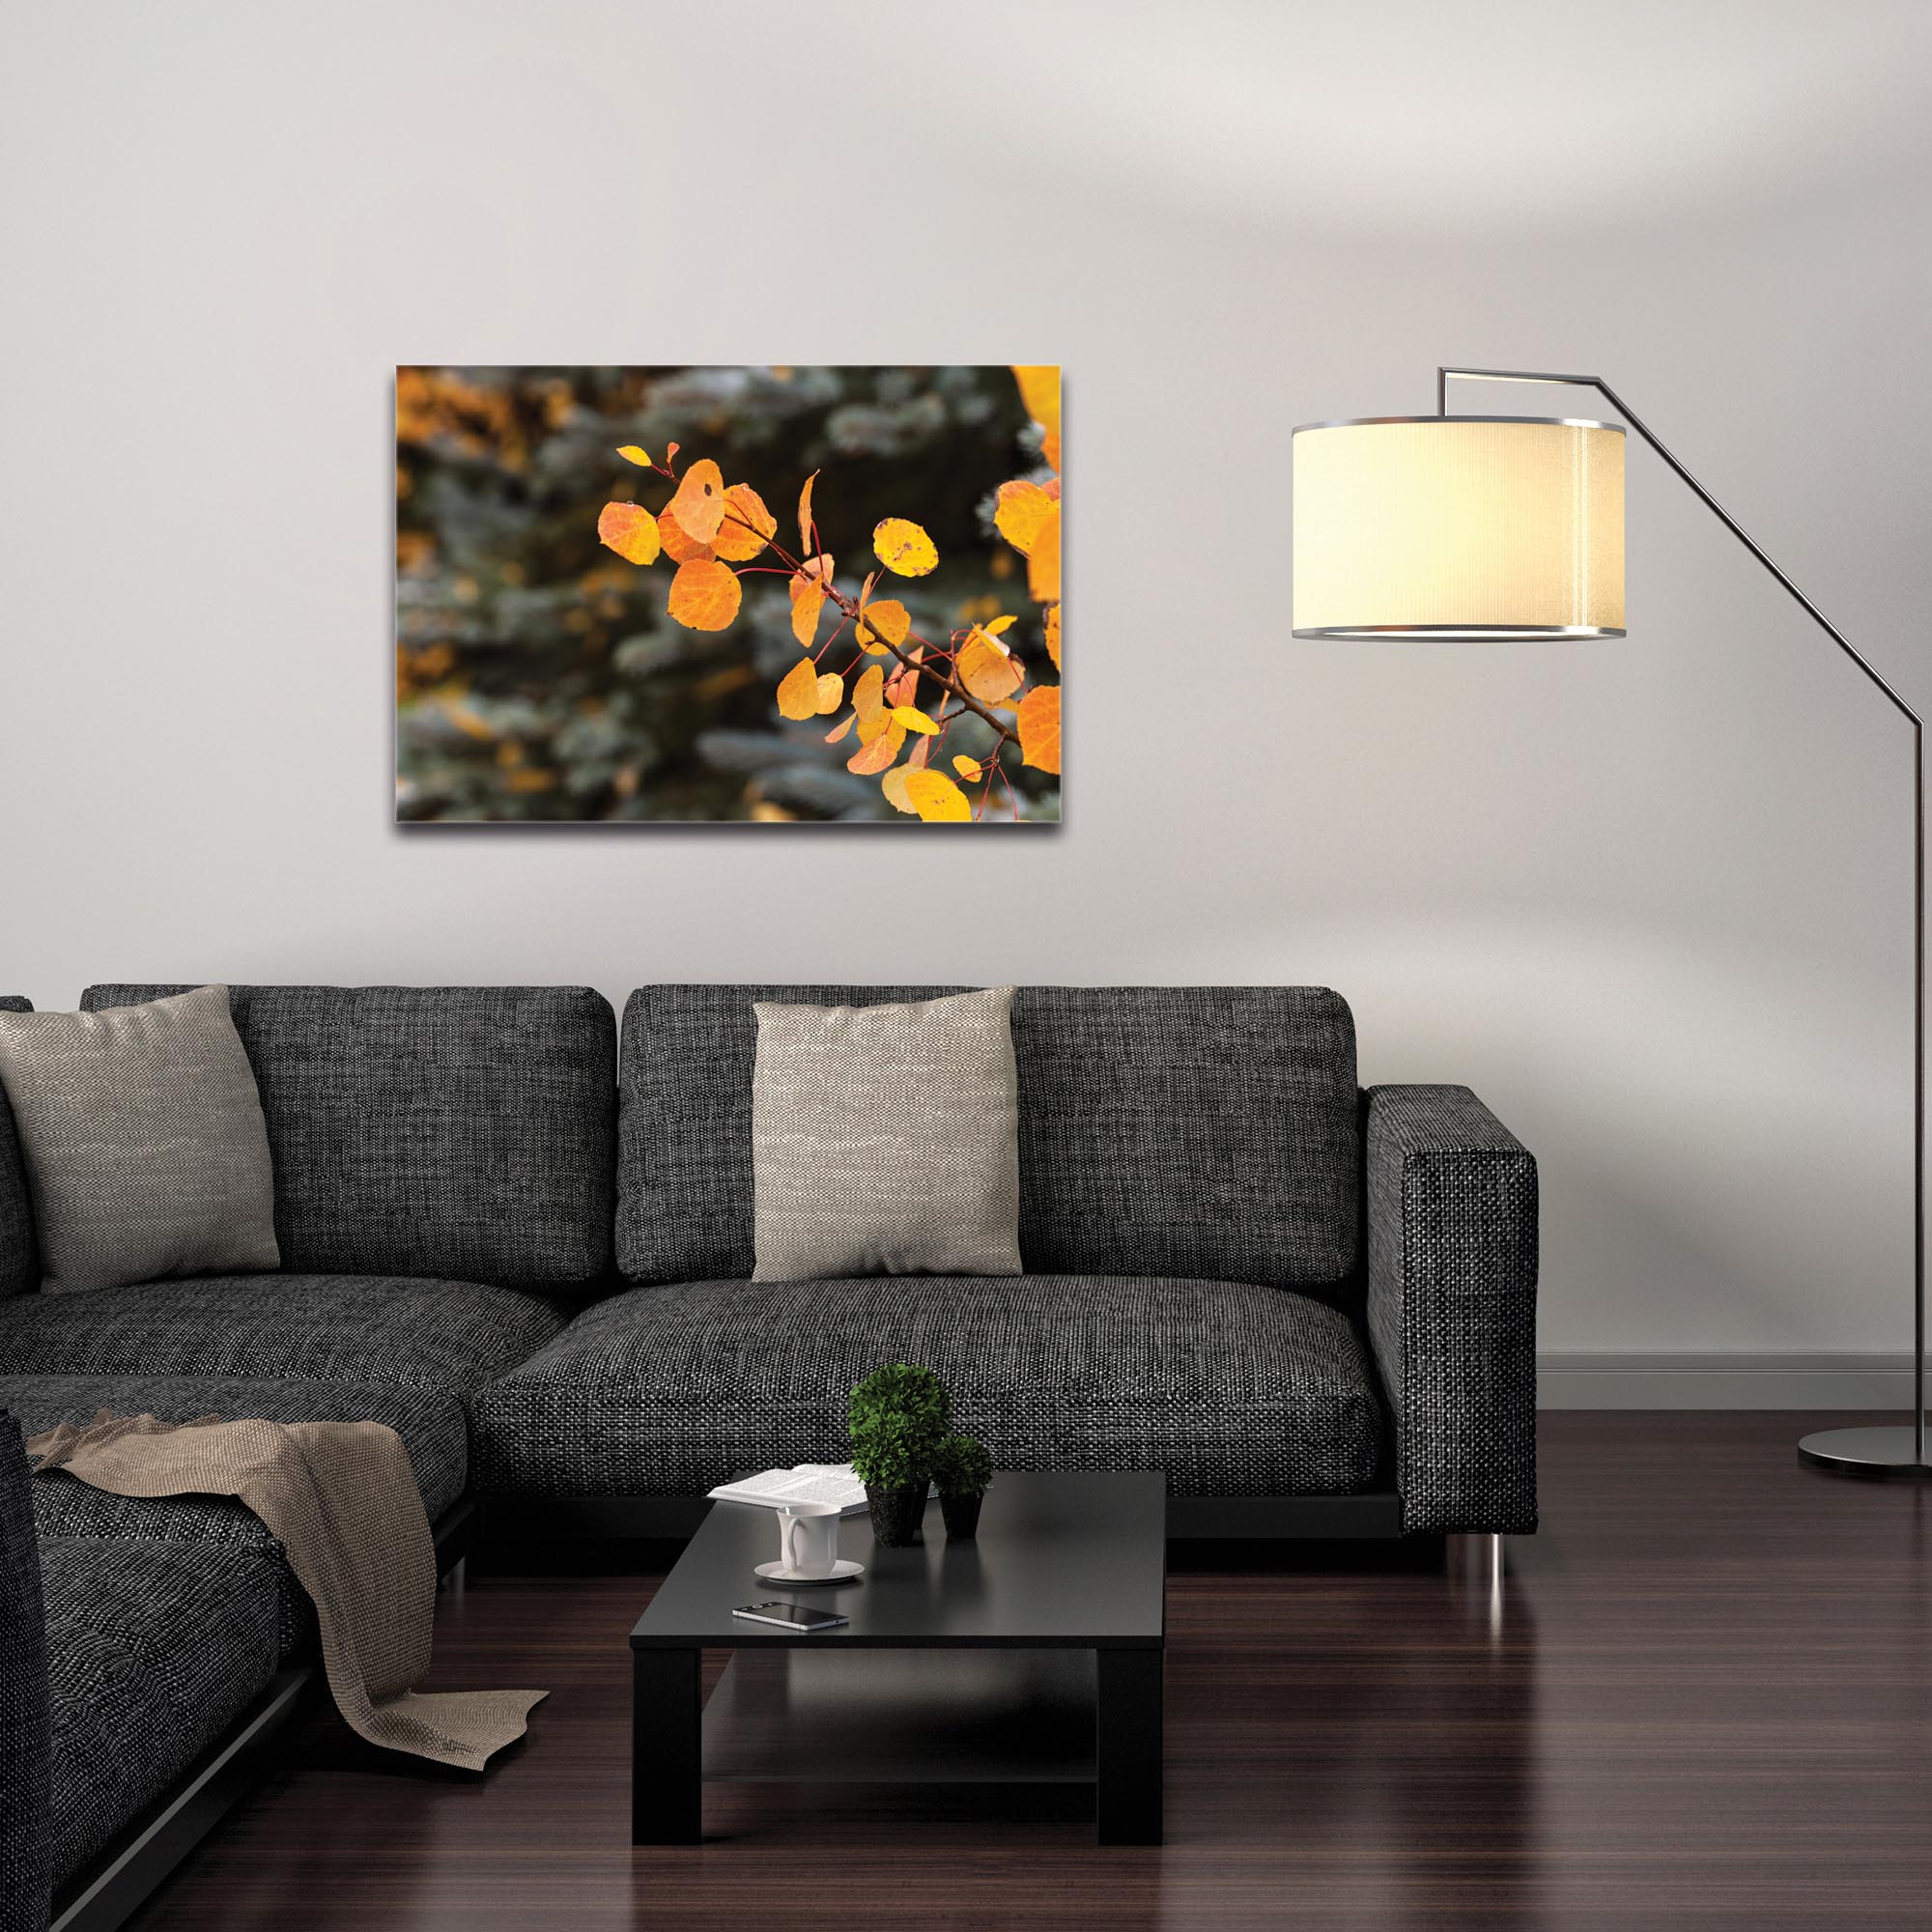 Nature Photography 'Autumn Branch' - Autumn Leaves Art on Metal or Plexiglass - Image 3